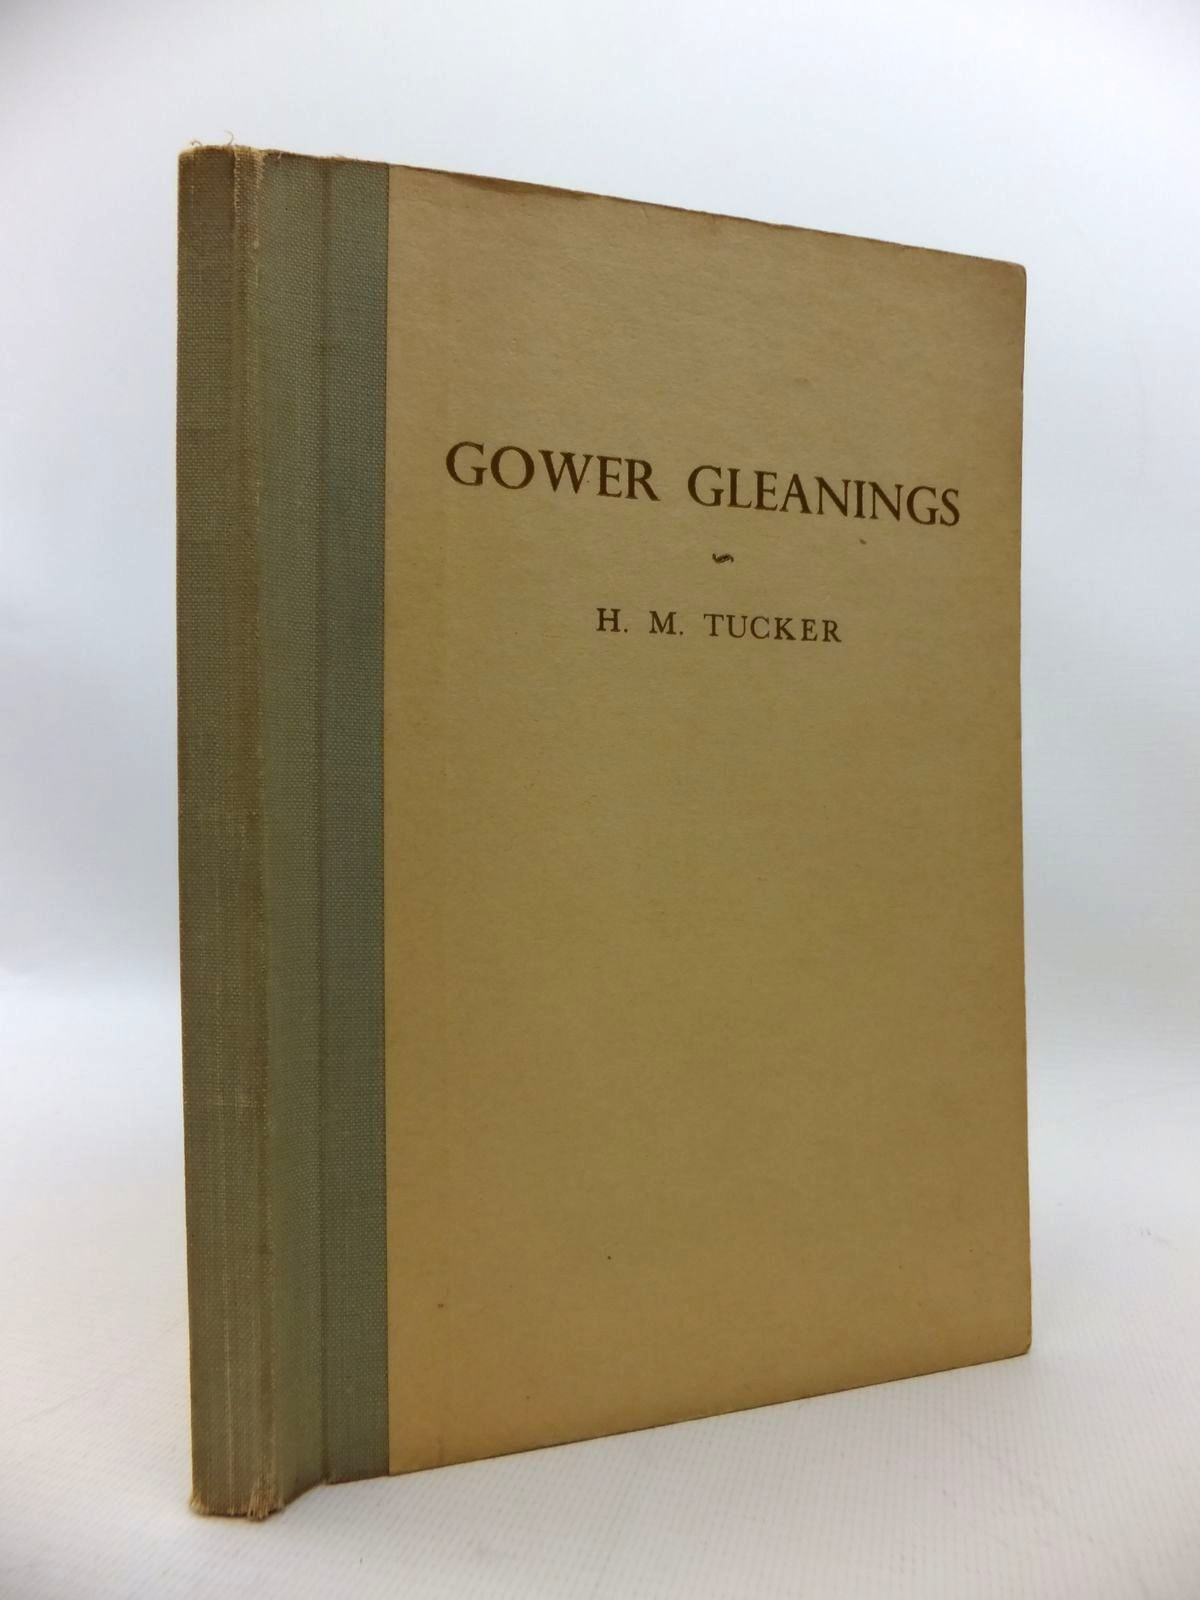 Photo of GOWER GLEANINGS written by Tucker, H.M. illustrated by Morgan, E. Ernest published by The Gower Society (STOCK CODE: 1814561)  for sale by Stella & Rose's Books